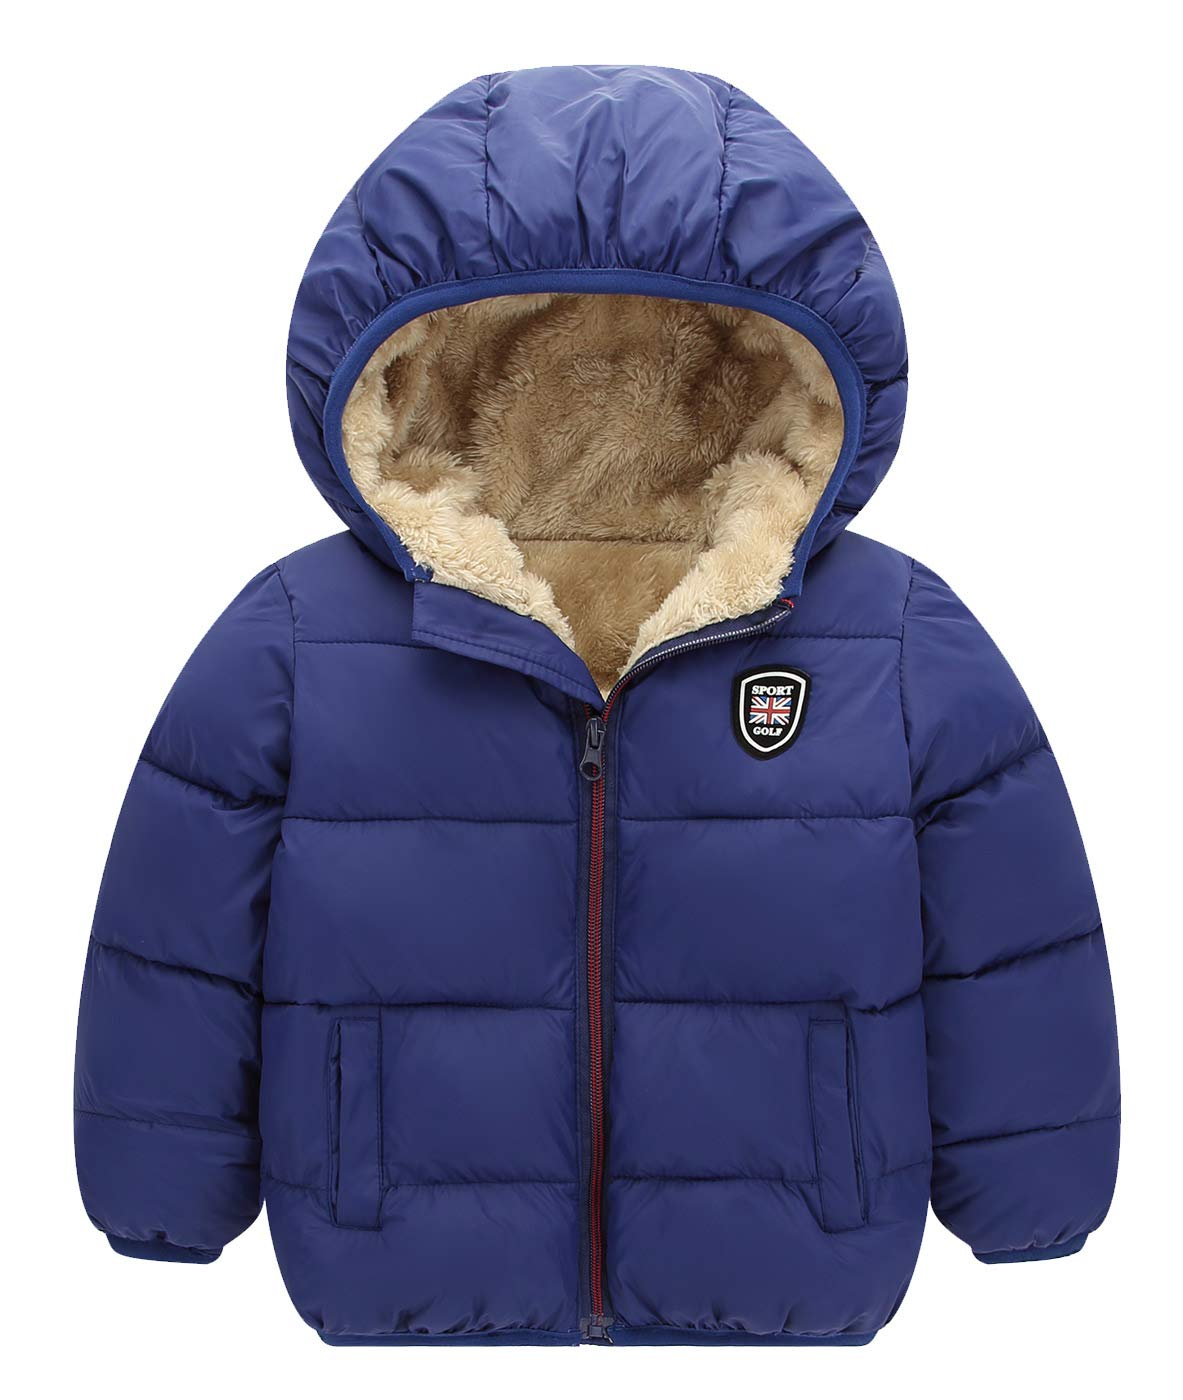 Happy Cherry Boys Blue Winter Hooded Bubble Coat Warm Down Jacket Thick Outerwear 6 to 7 Years Old by Happy Cherry